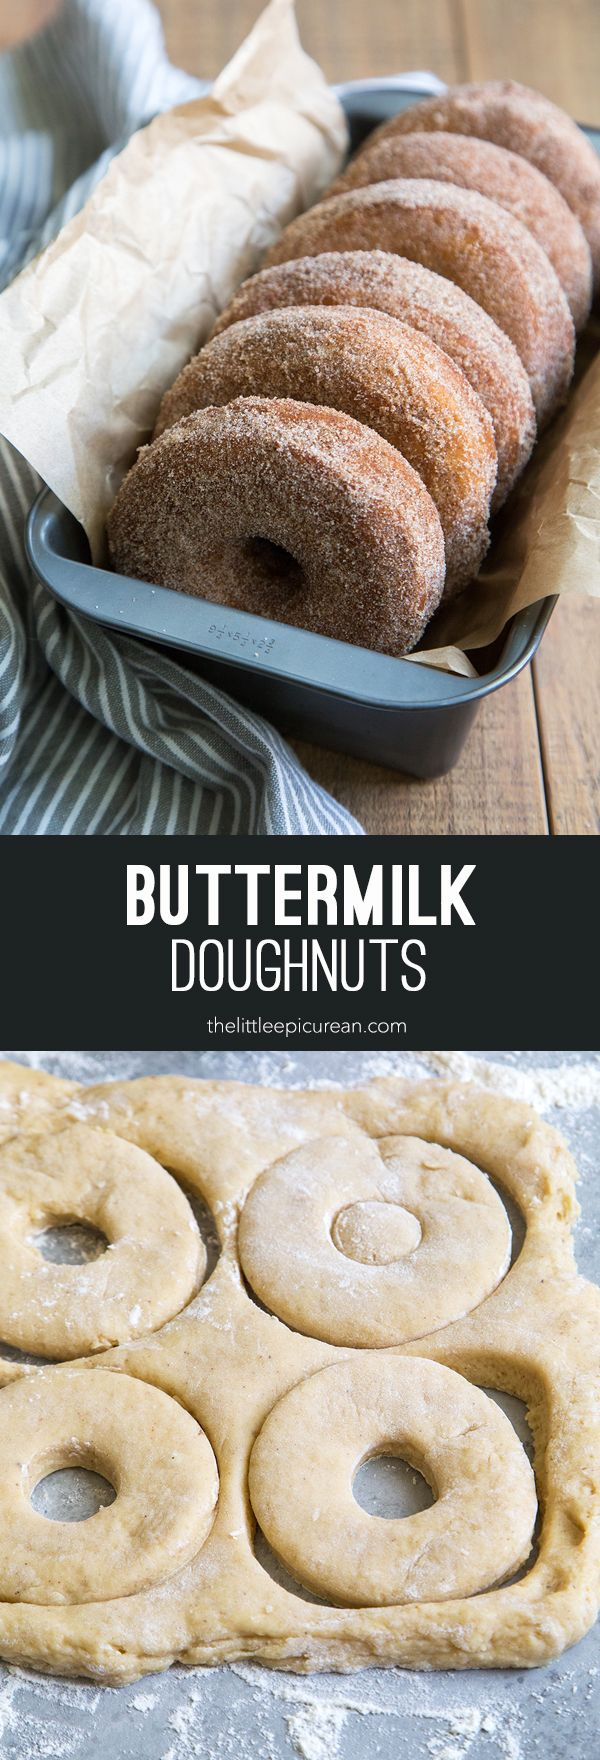 Buttermilk Doughnuts: this easy, no rise dough is an quick way to have fresh doughnuts at home anytime. Coated in cinnamon sugar